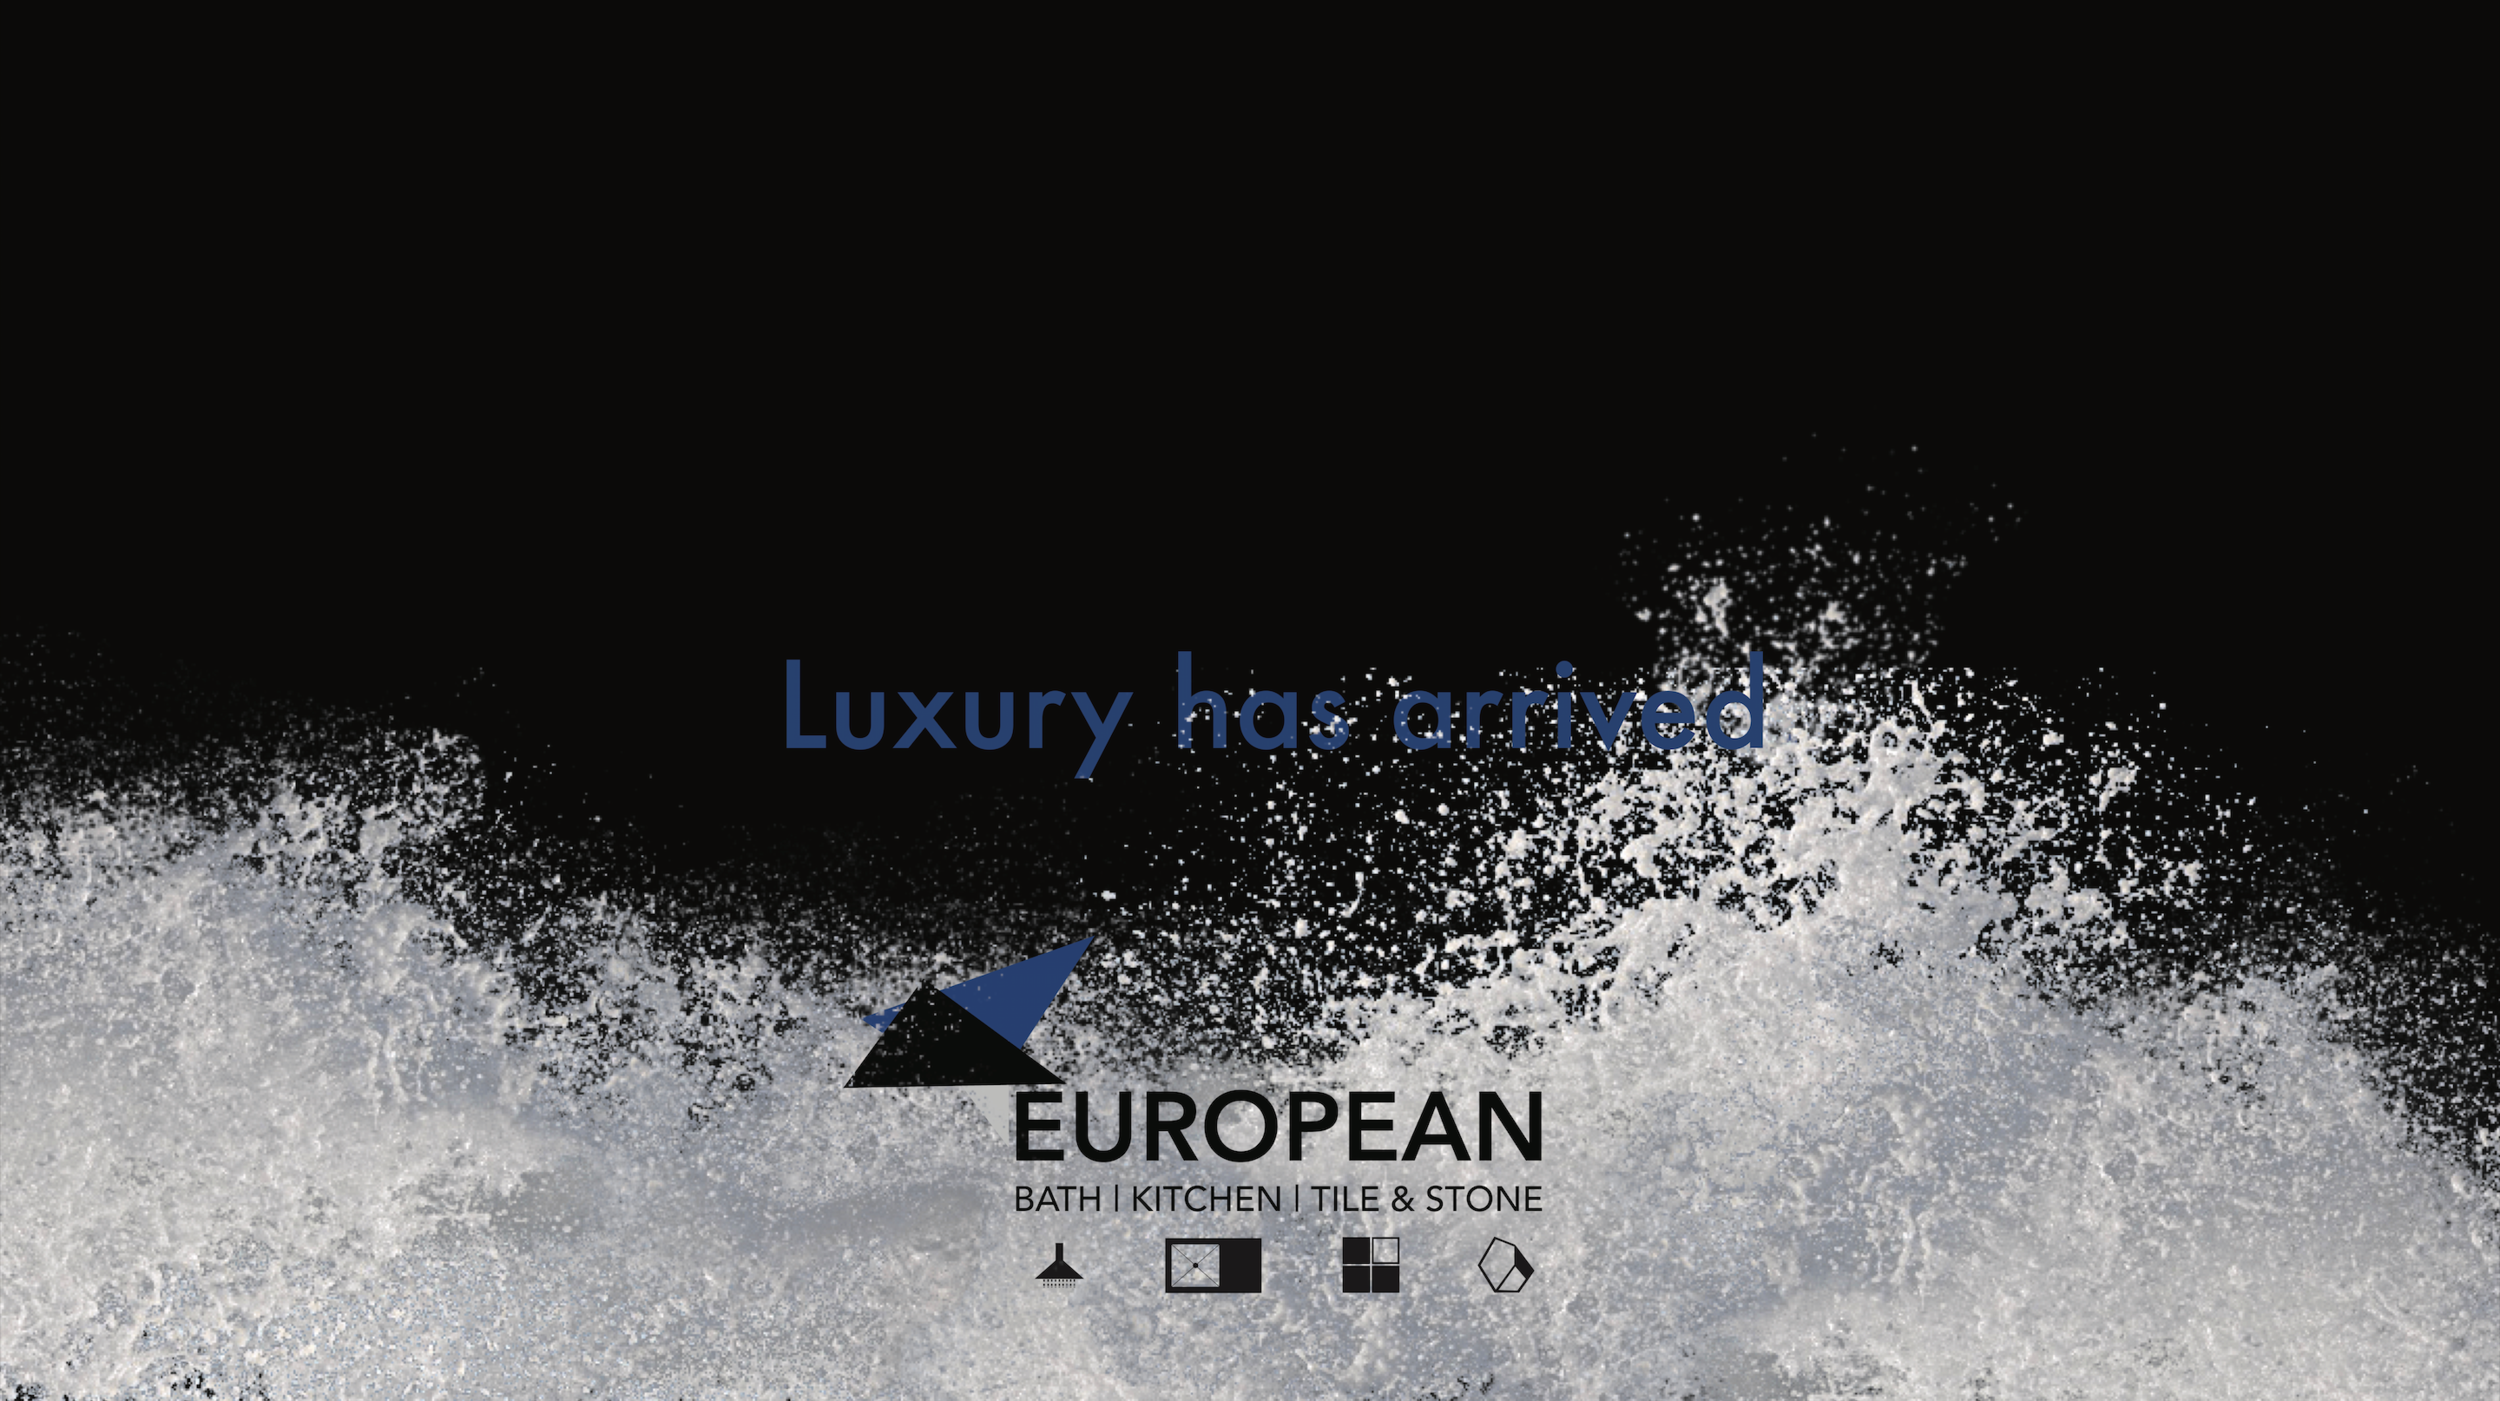 Your local destination for luxury design. - Luxury has arrived at the Las Vegas Design Center!